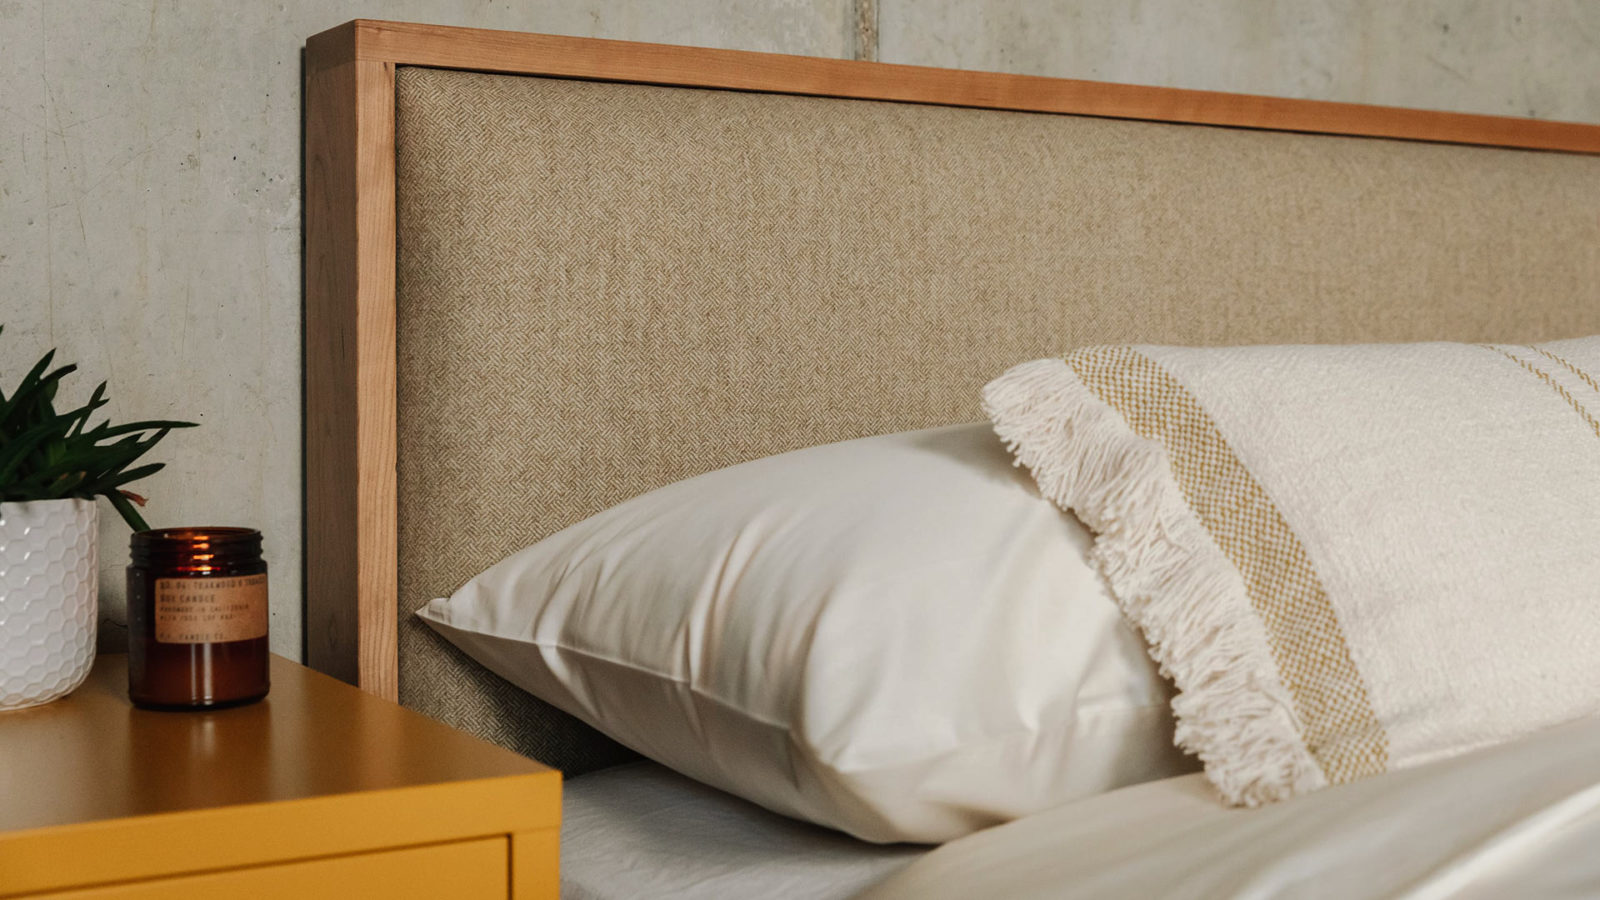 The upholstered headboard of the Shetland contemporary wooden bed in cherry